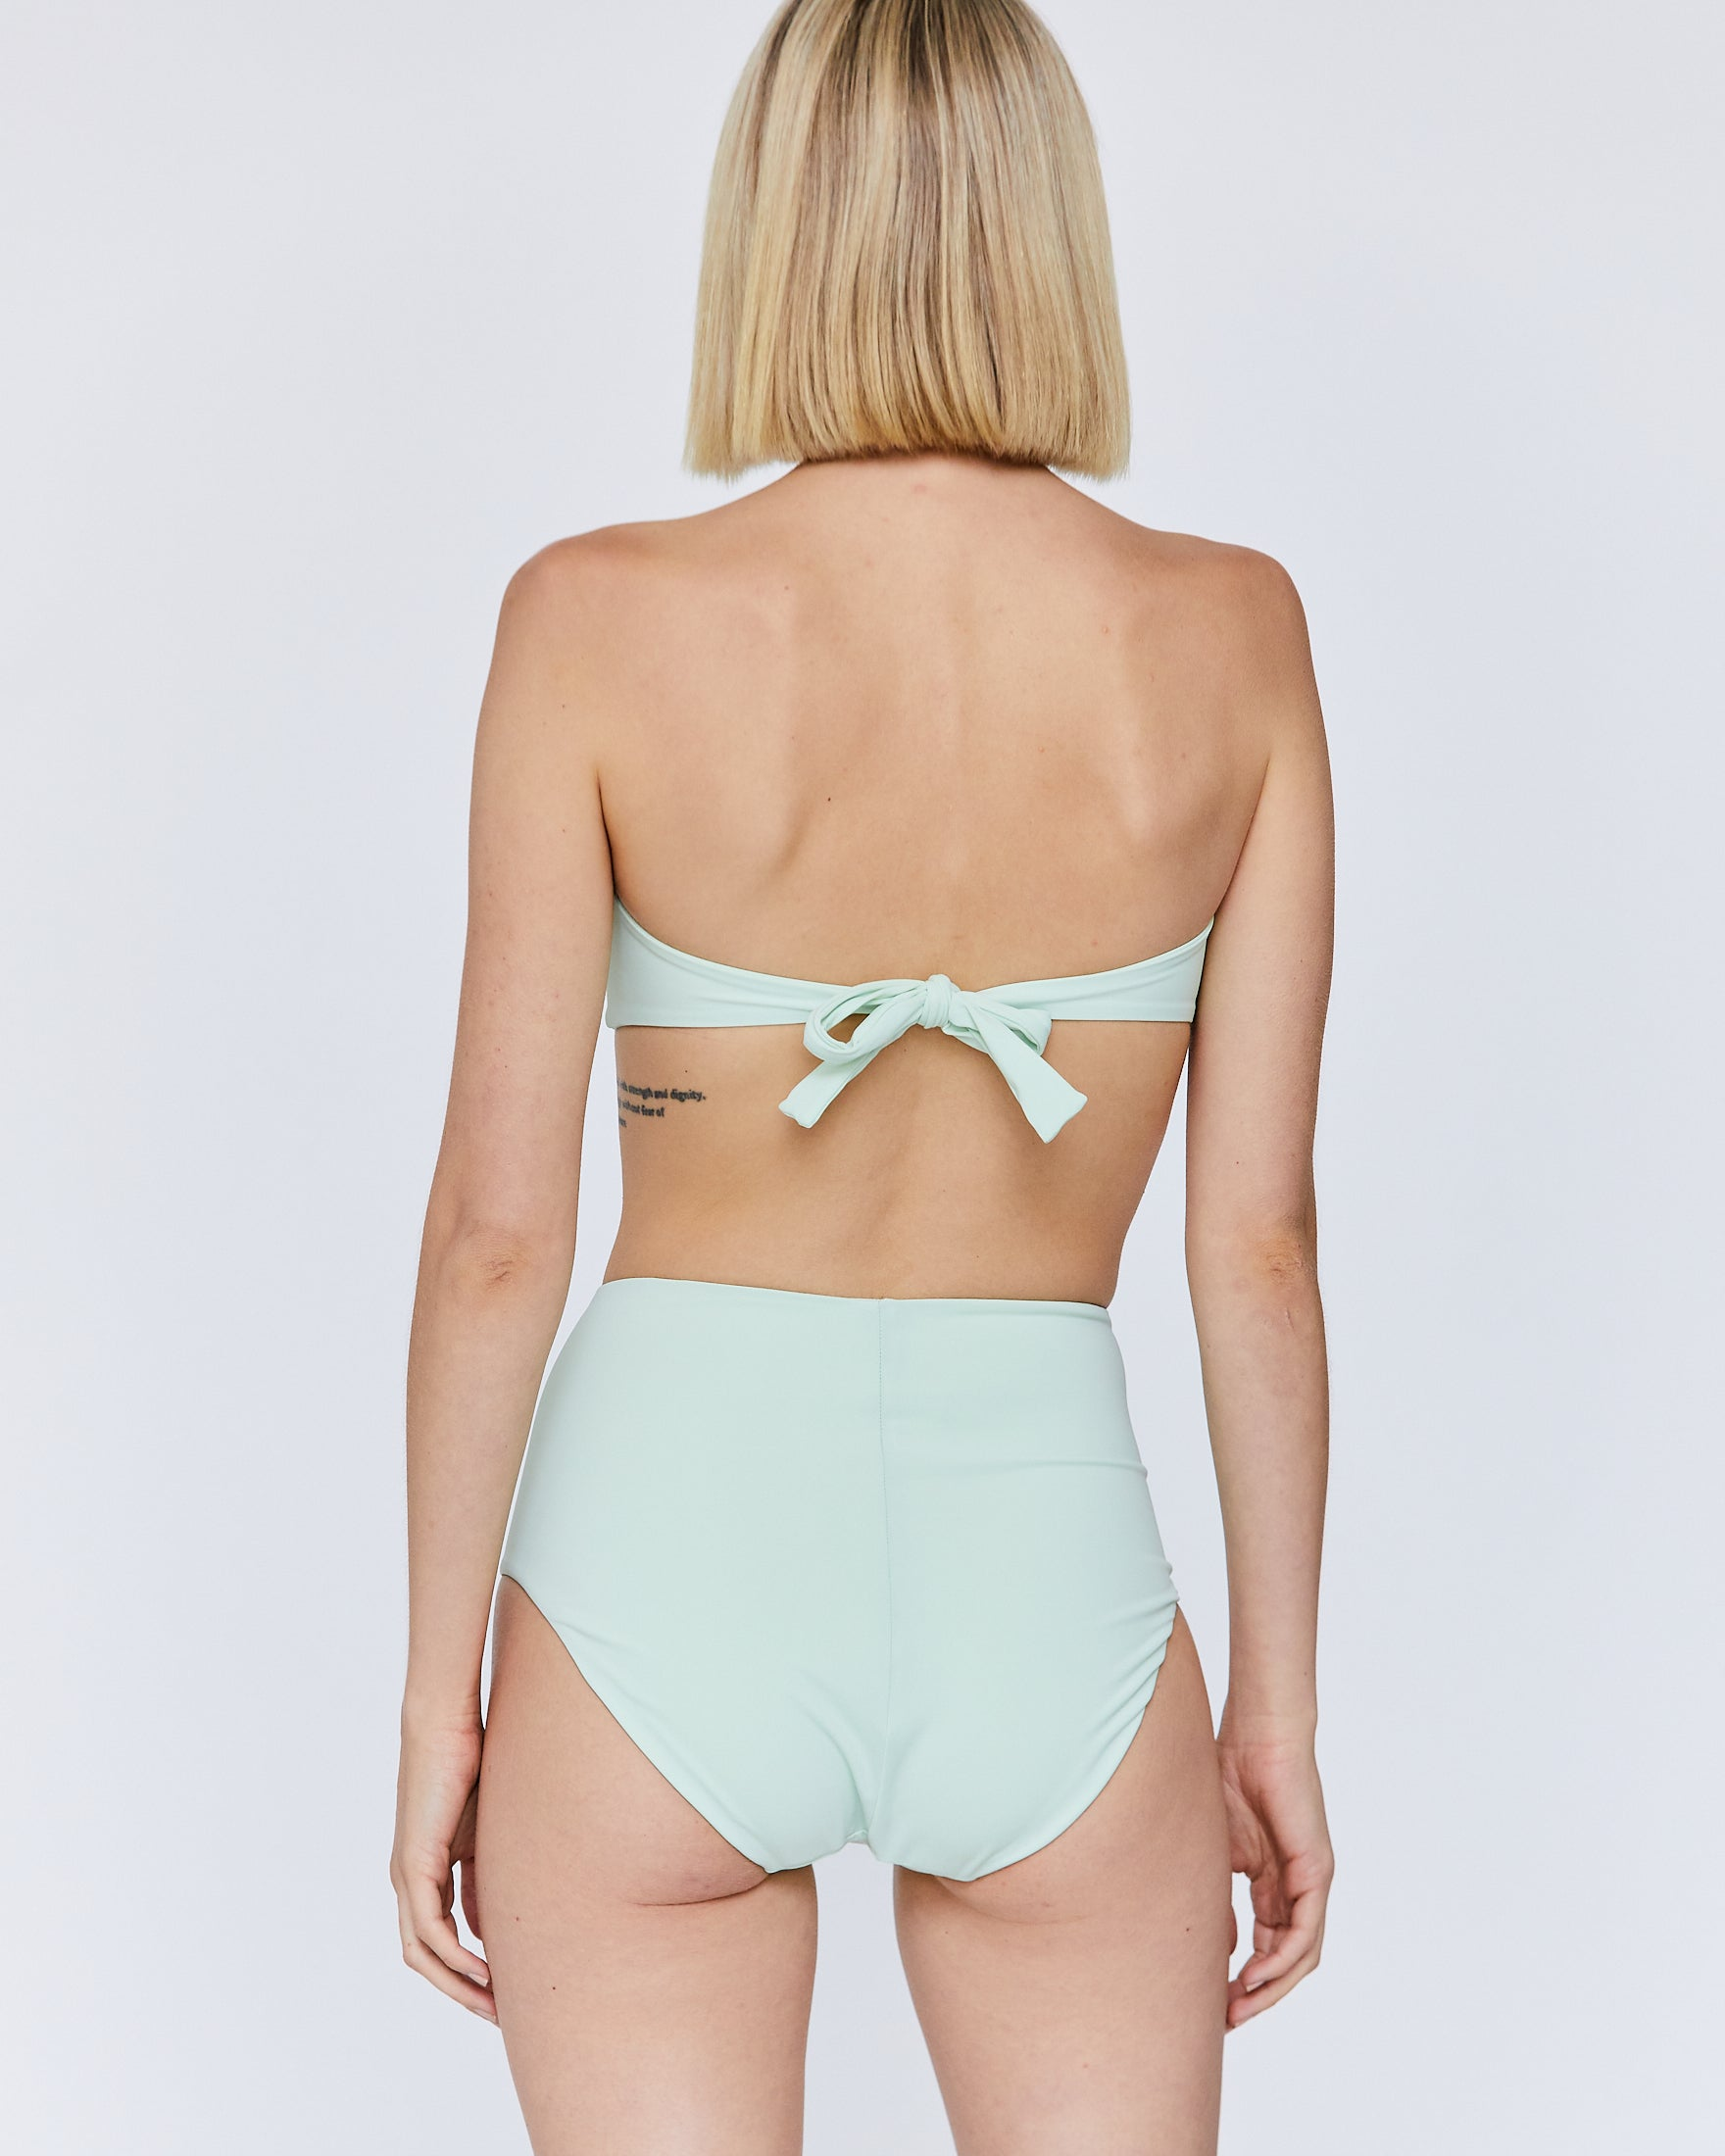 AUDREY BANDEAU TOP - SEA GLASS